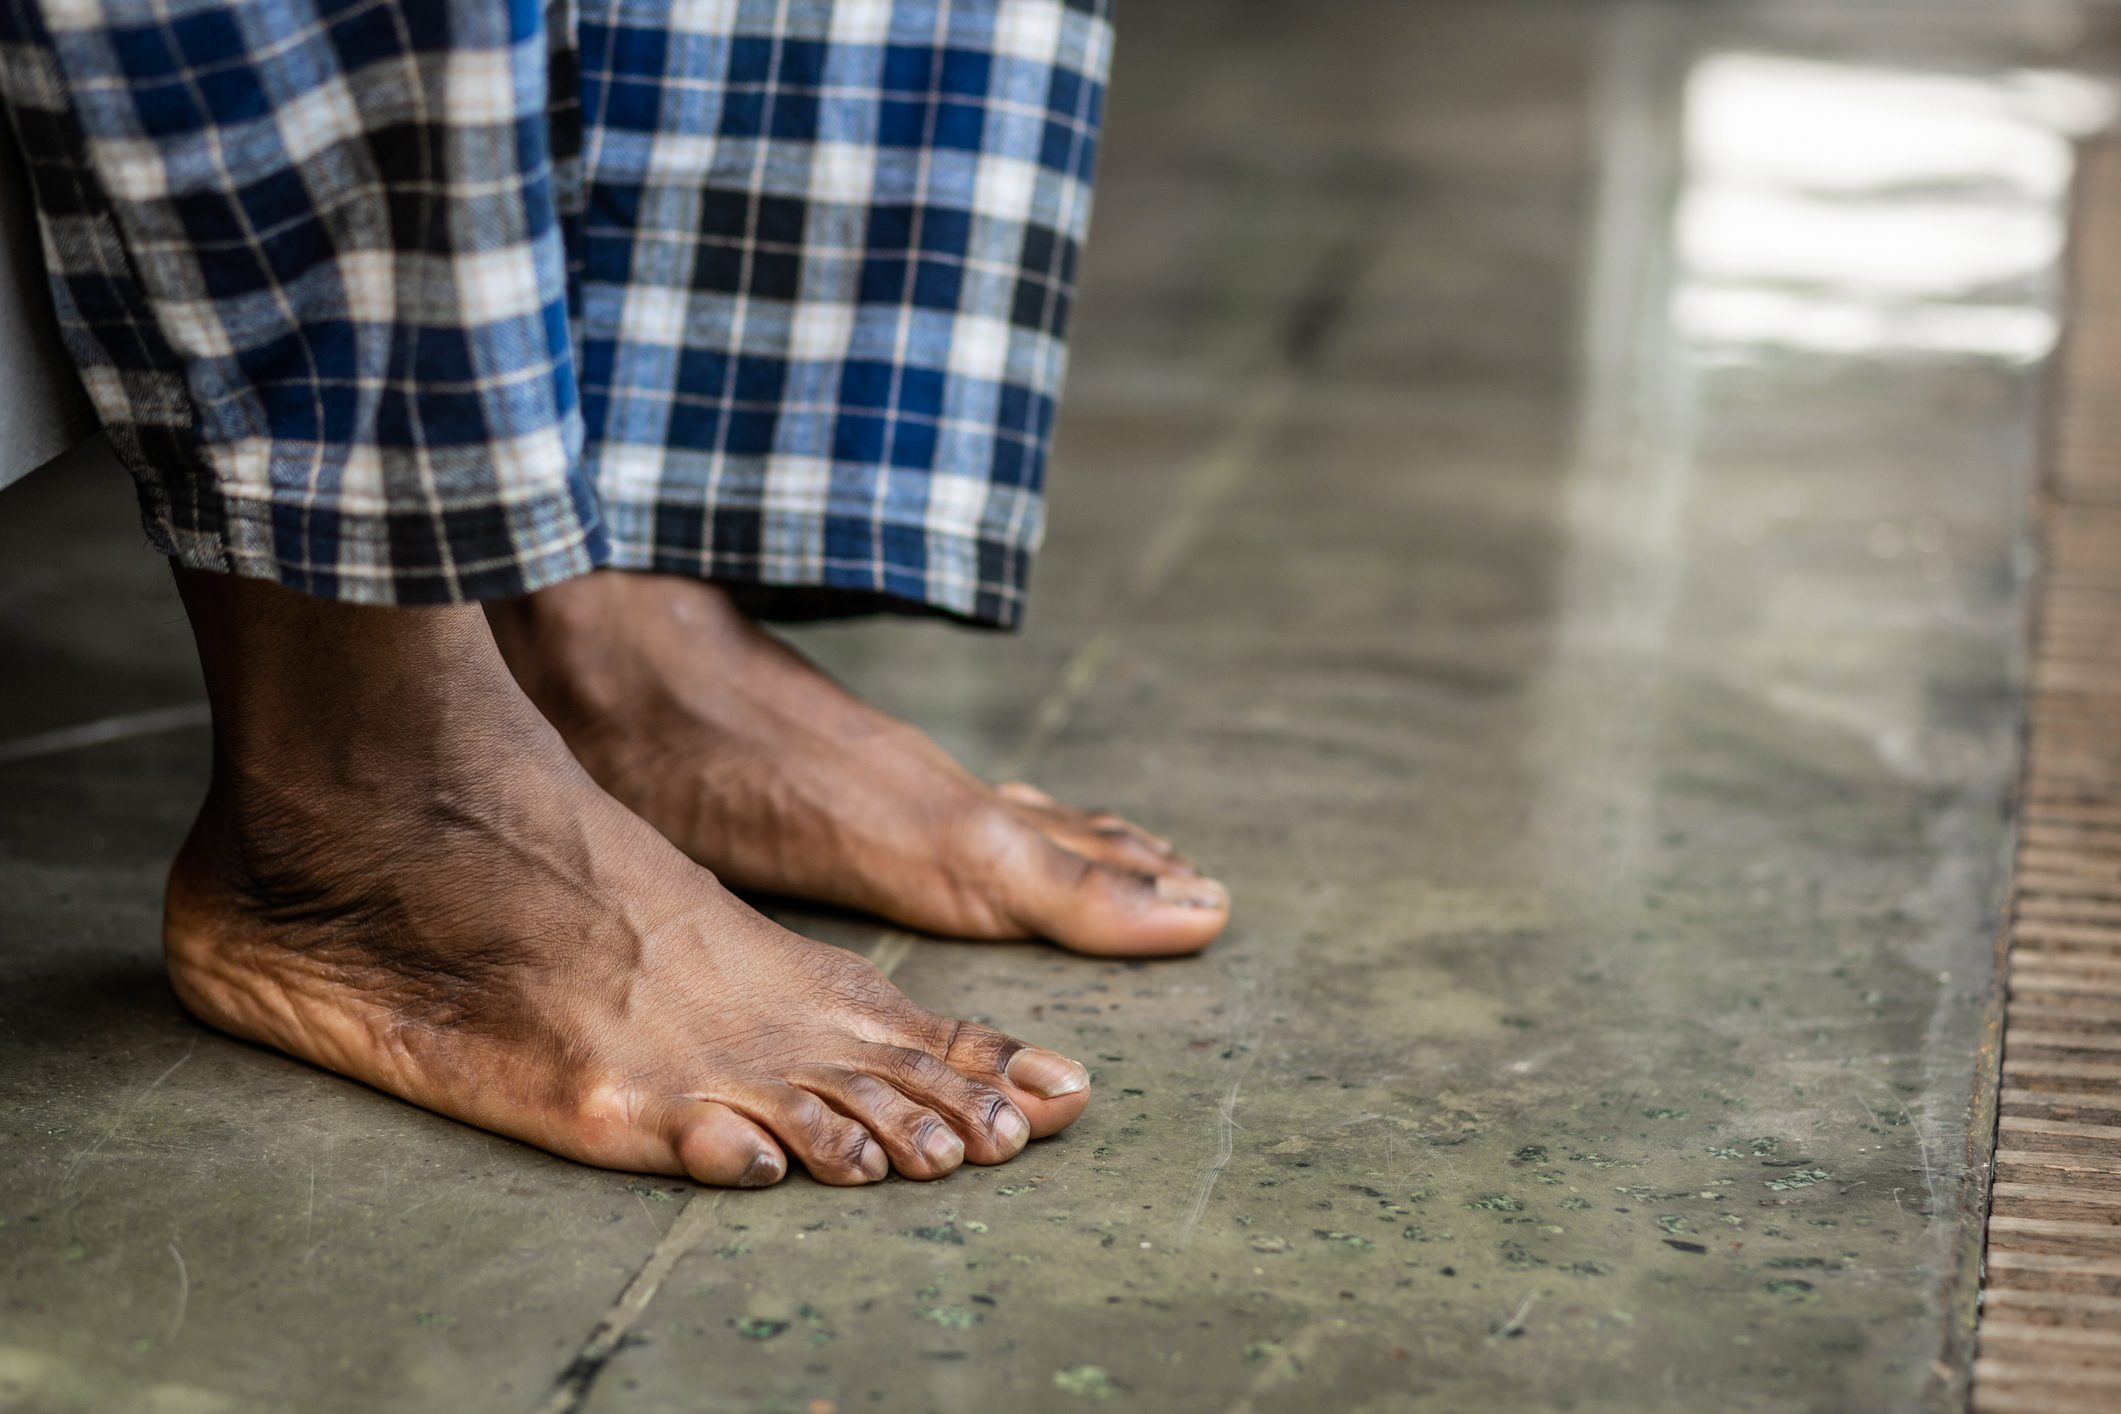 close-up of man's bare feet